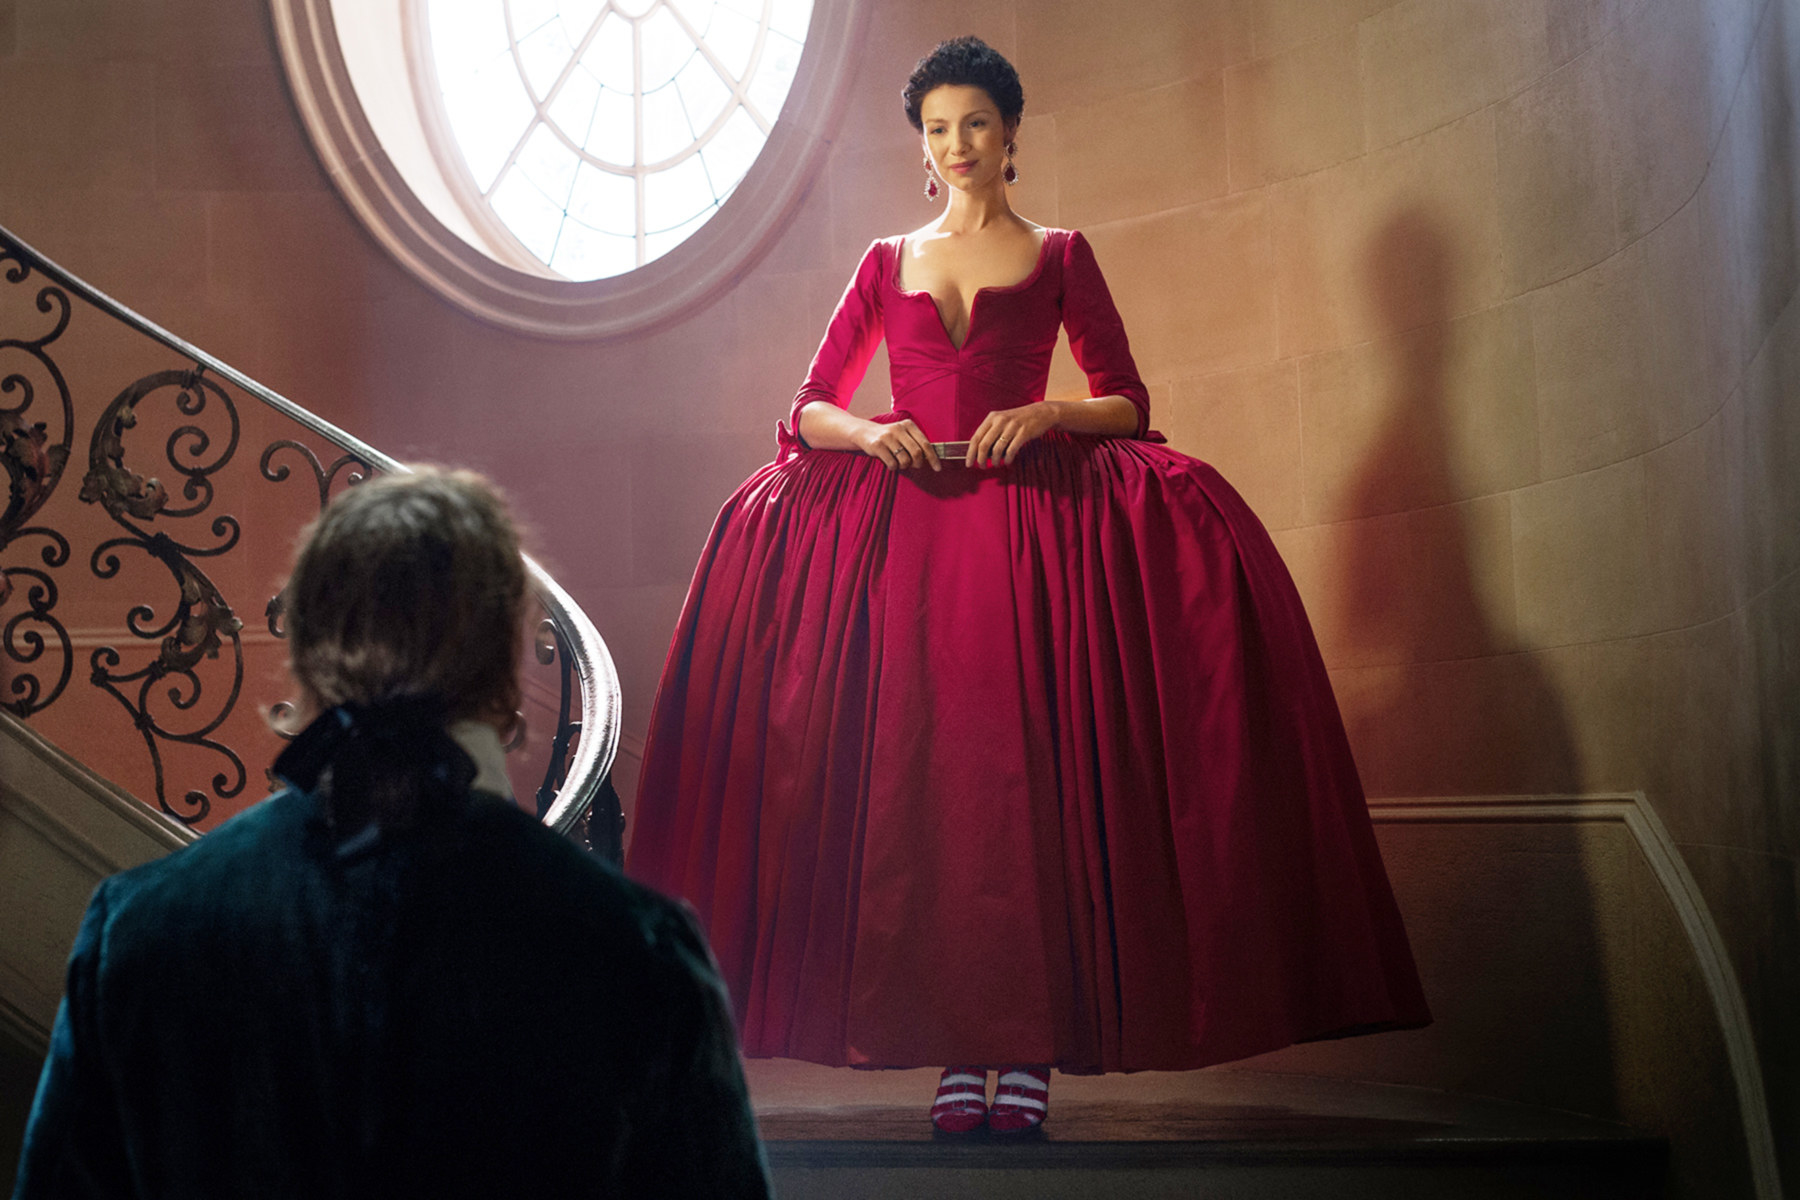 Jamie looking astonished at Claire as she descends down the stairs